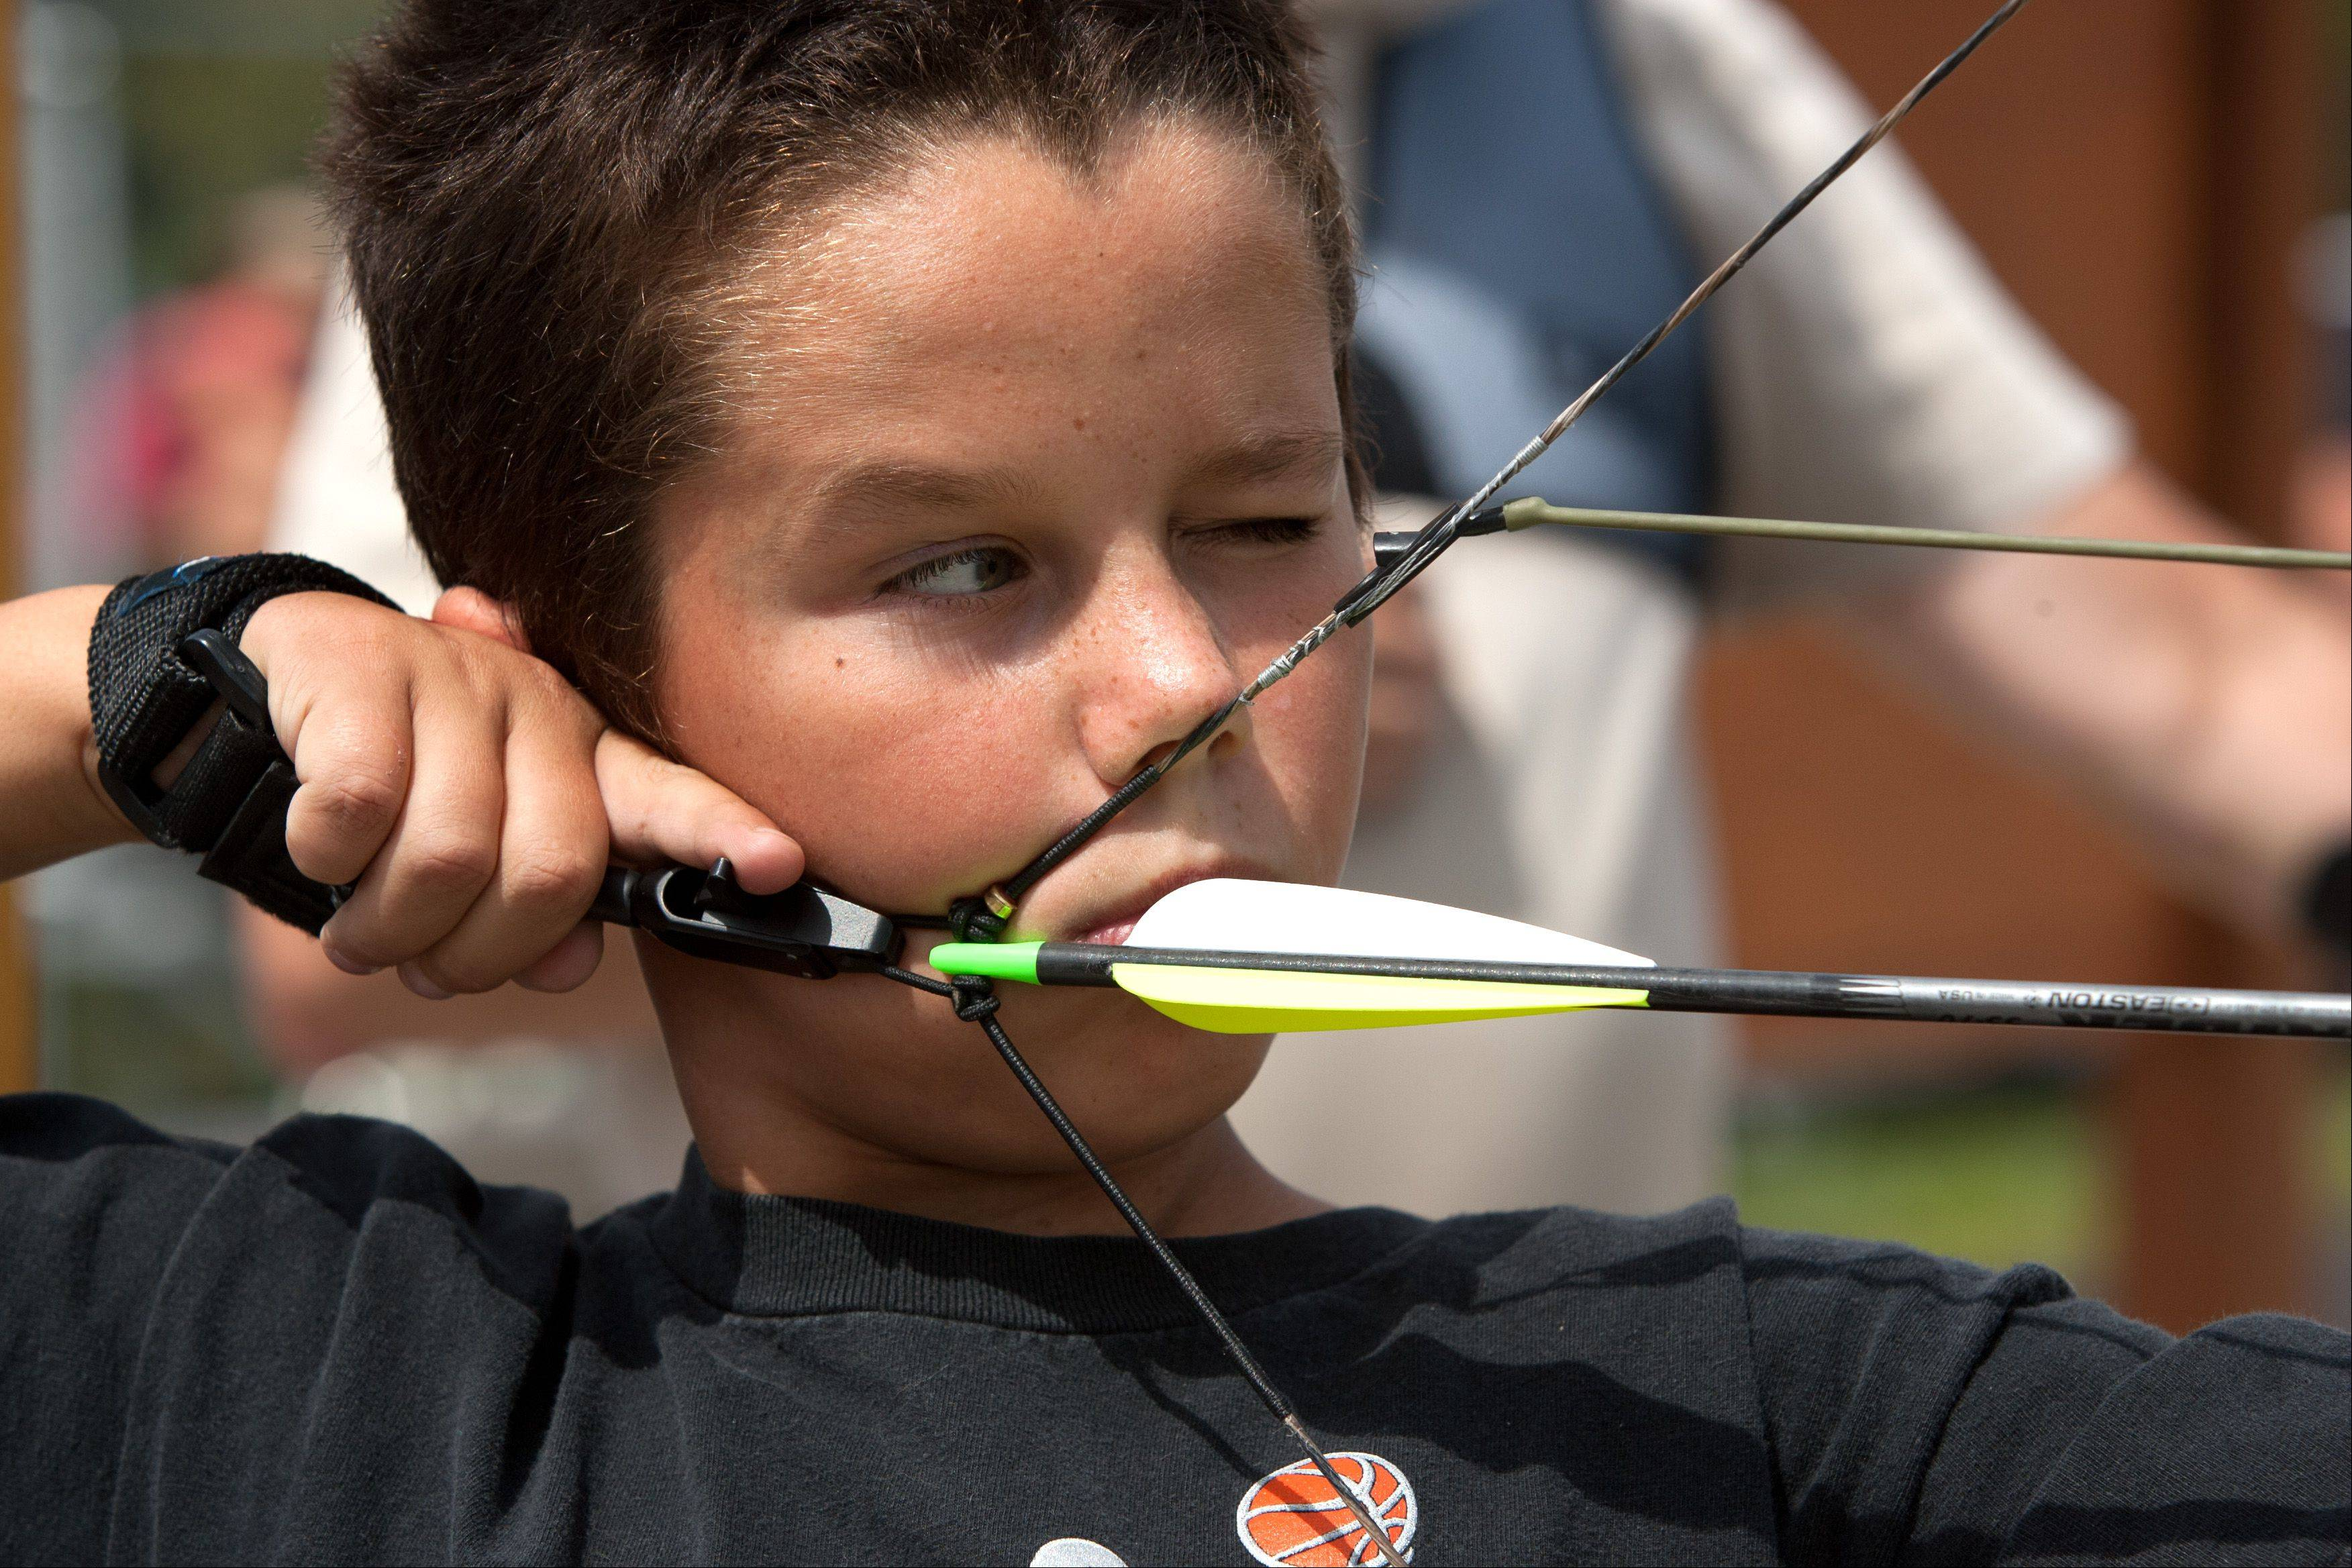 Daniel White/dwhite@dailyherald.comRay Black, 11, of Wheaton, eyes his target during the DuPage County Forest Preserve's opening of an upgraded archery range at the Blackwell Forest Preserve Saturday near Warrenville.